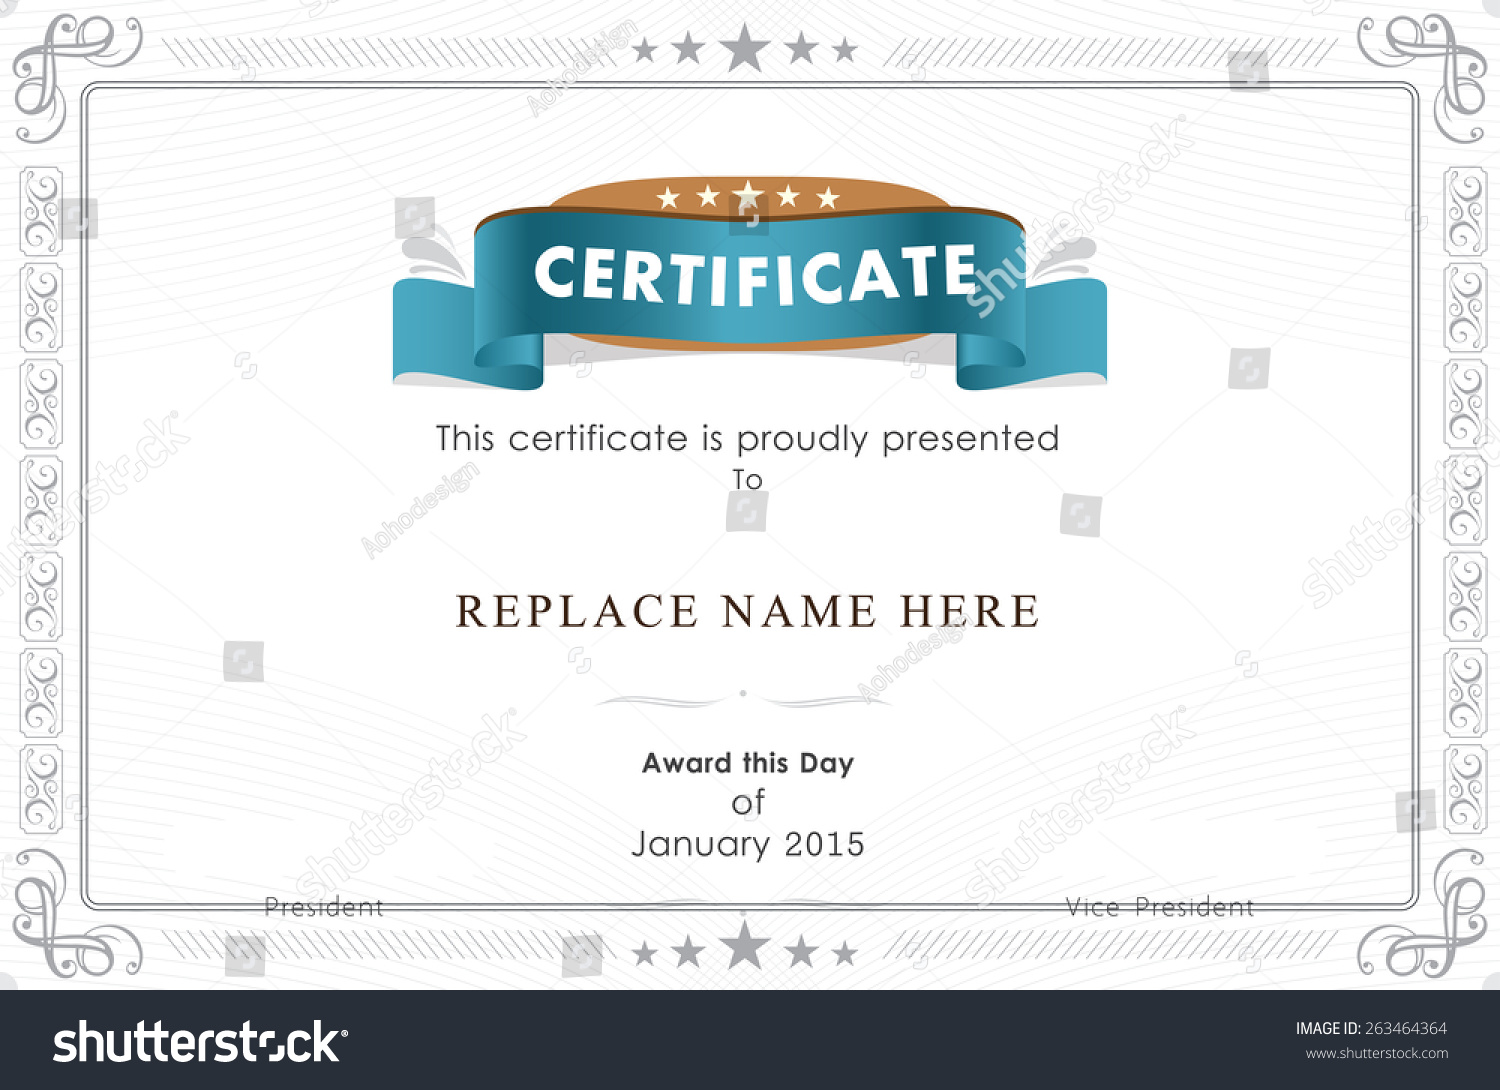 Stock certificate example alumni director cover letter proof of share certificate template uk sample resume for hvac technician stock vector certificate border certificate template vector yadclub Images